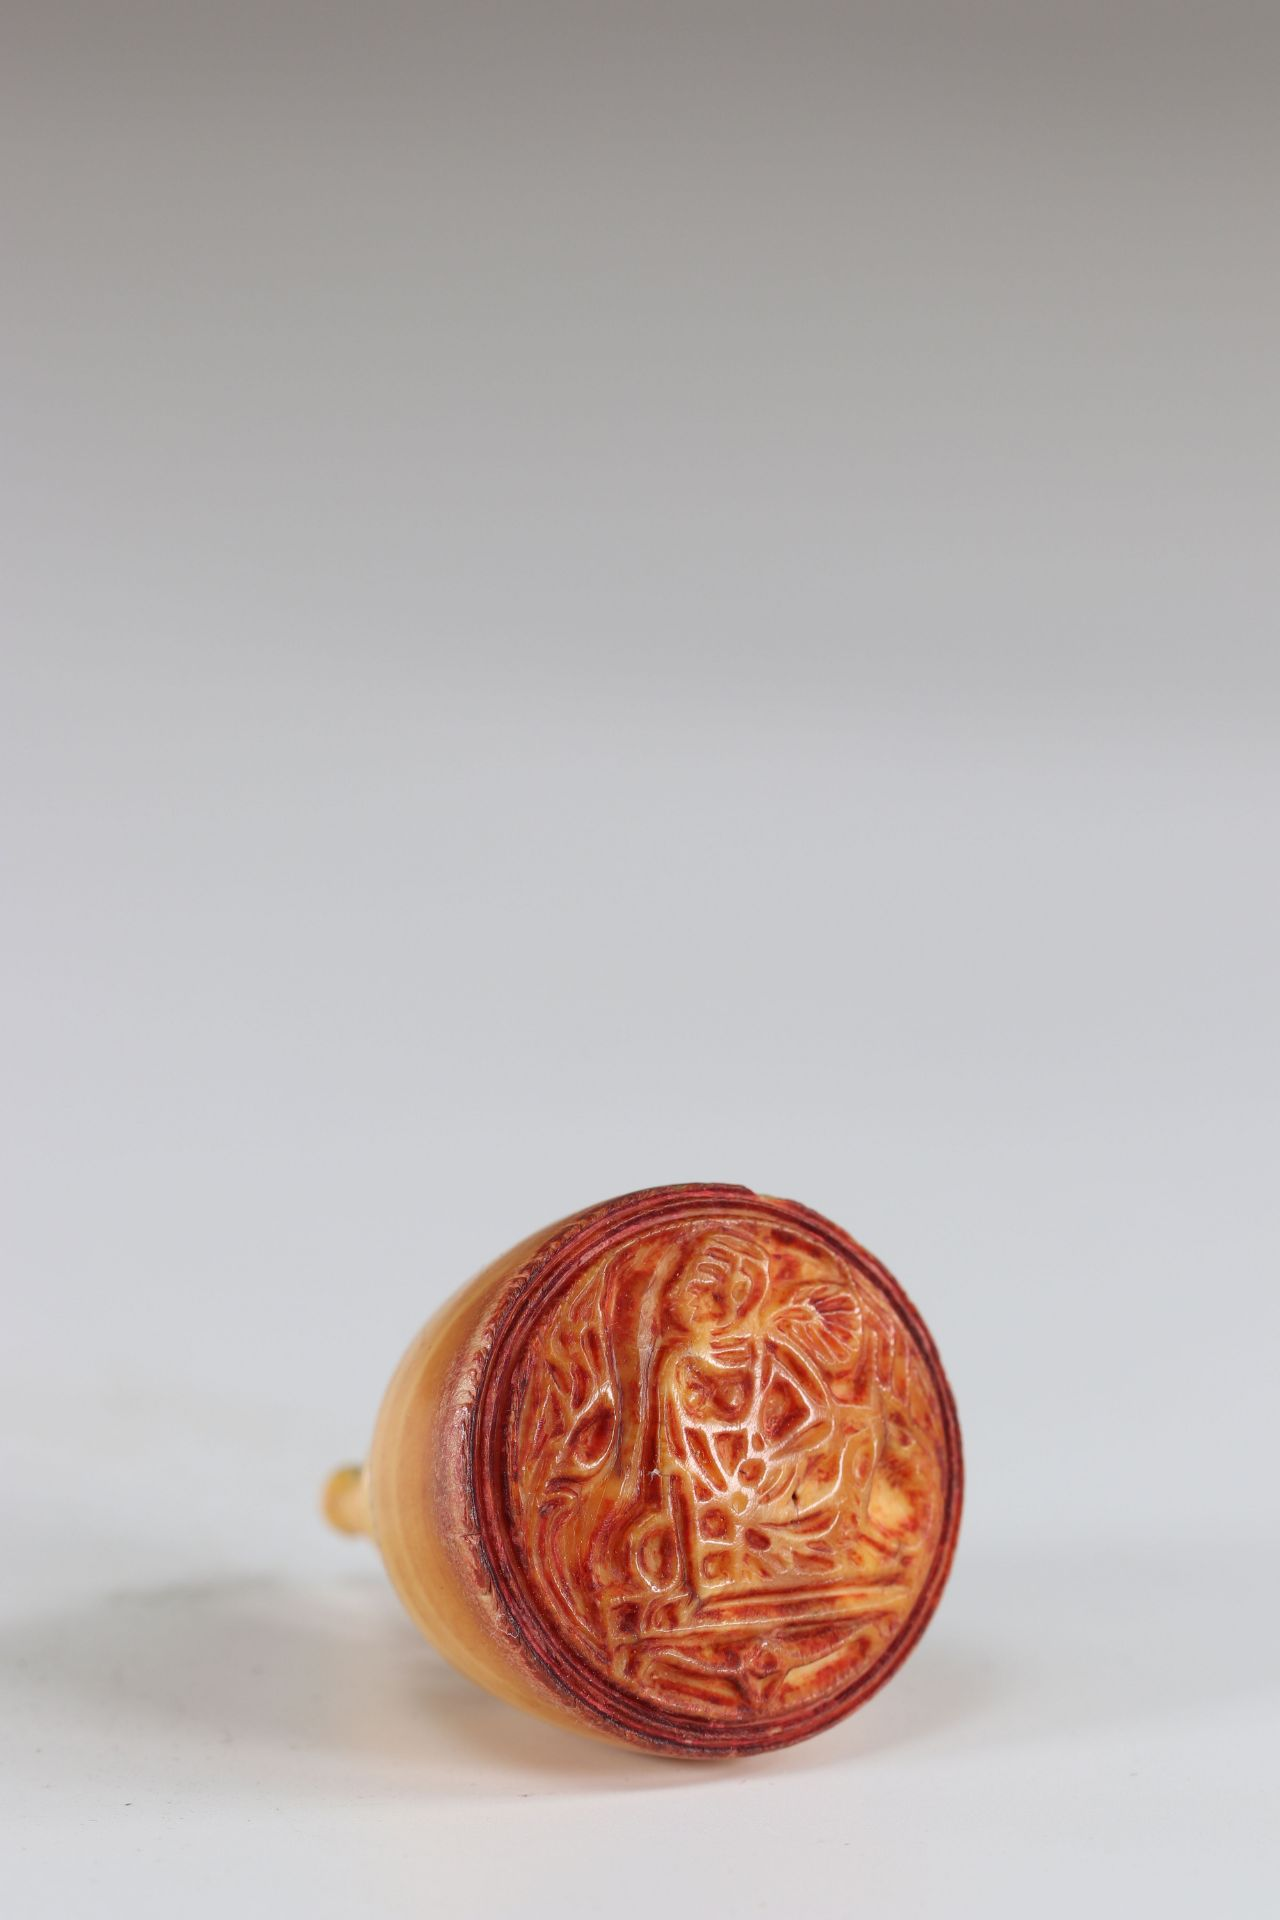 Seal in the shape of a stupa - Image 2 of 2